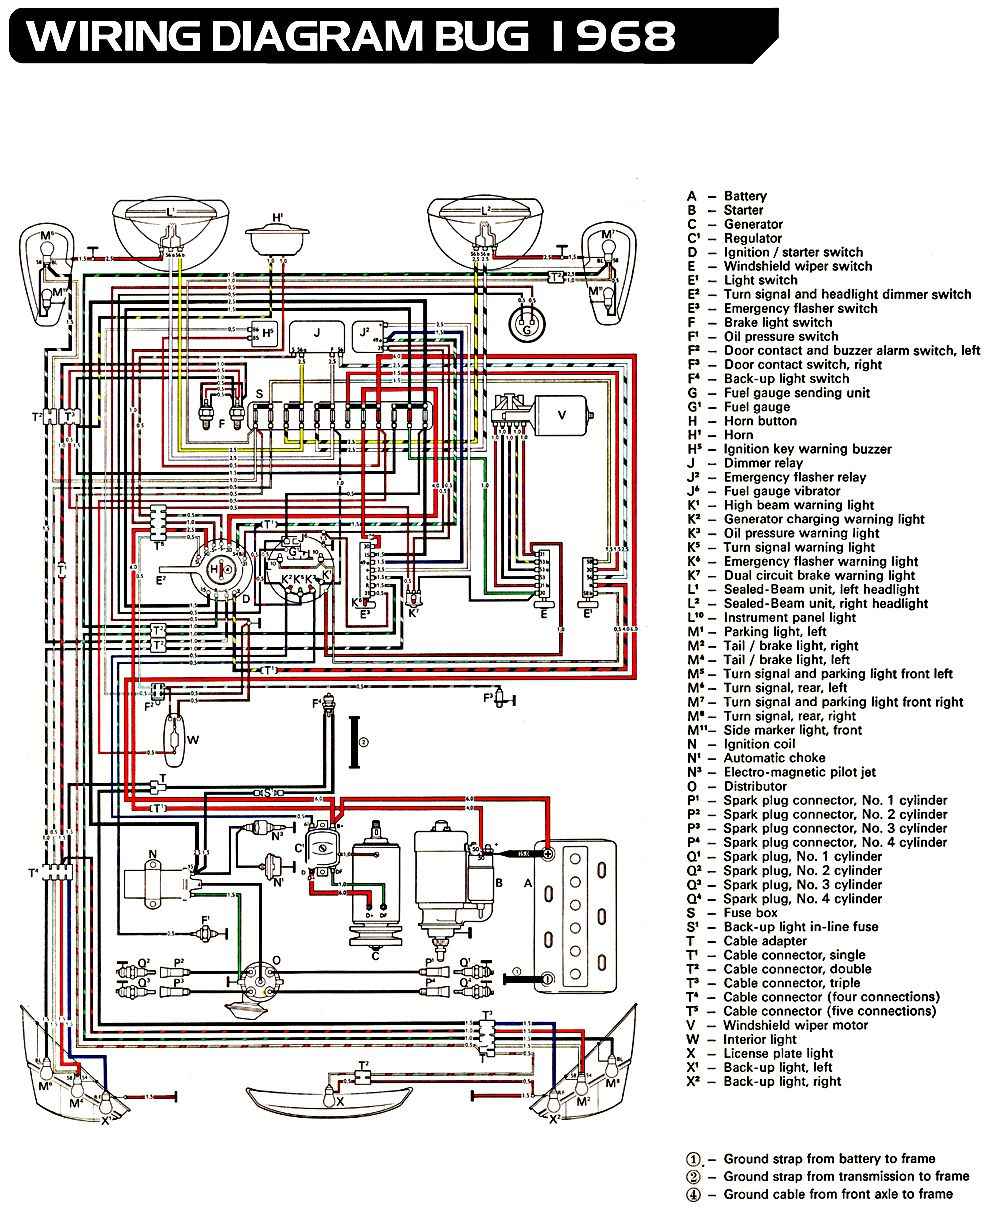 3a1908112d3826270ed5e3be362292bf vw bug ignition wiring diagram 73 vw wiring diagram free 1965 vw bus wiring harness at cos-gaming.co